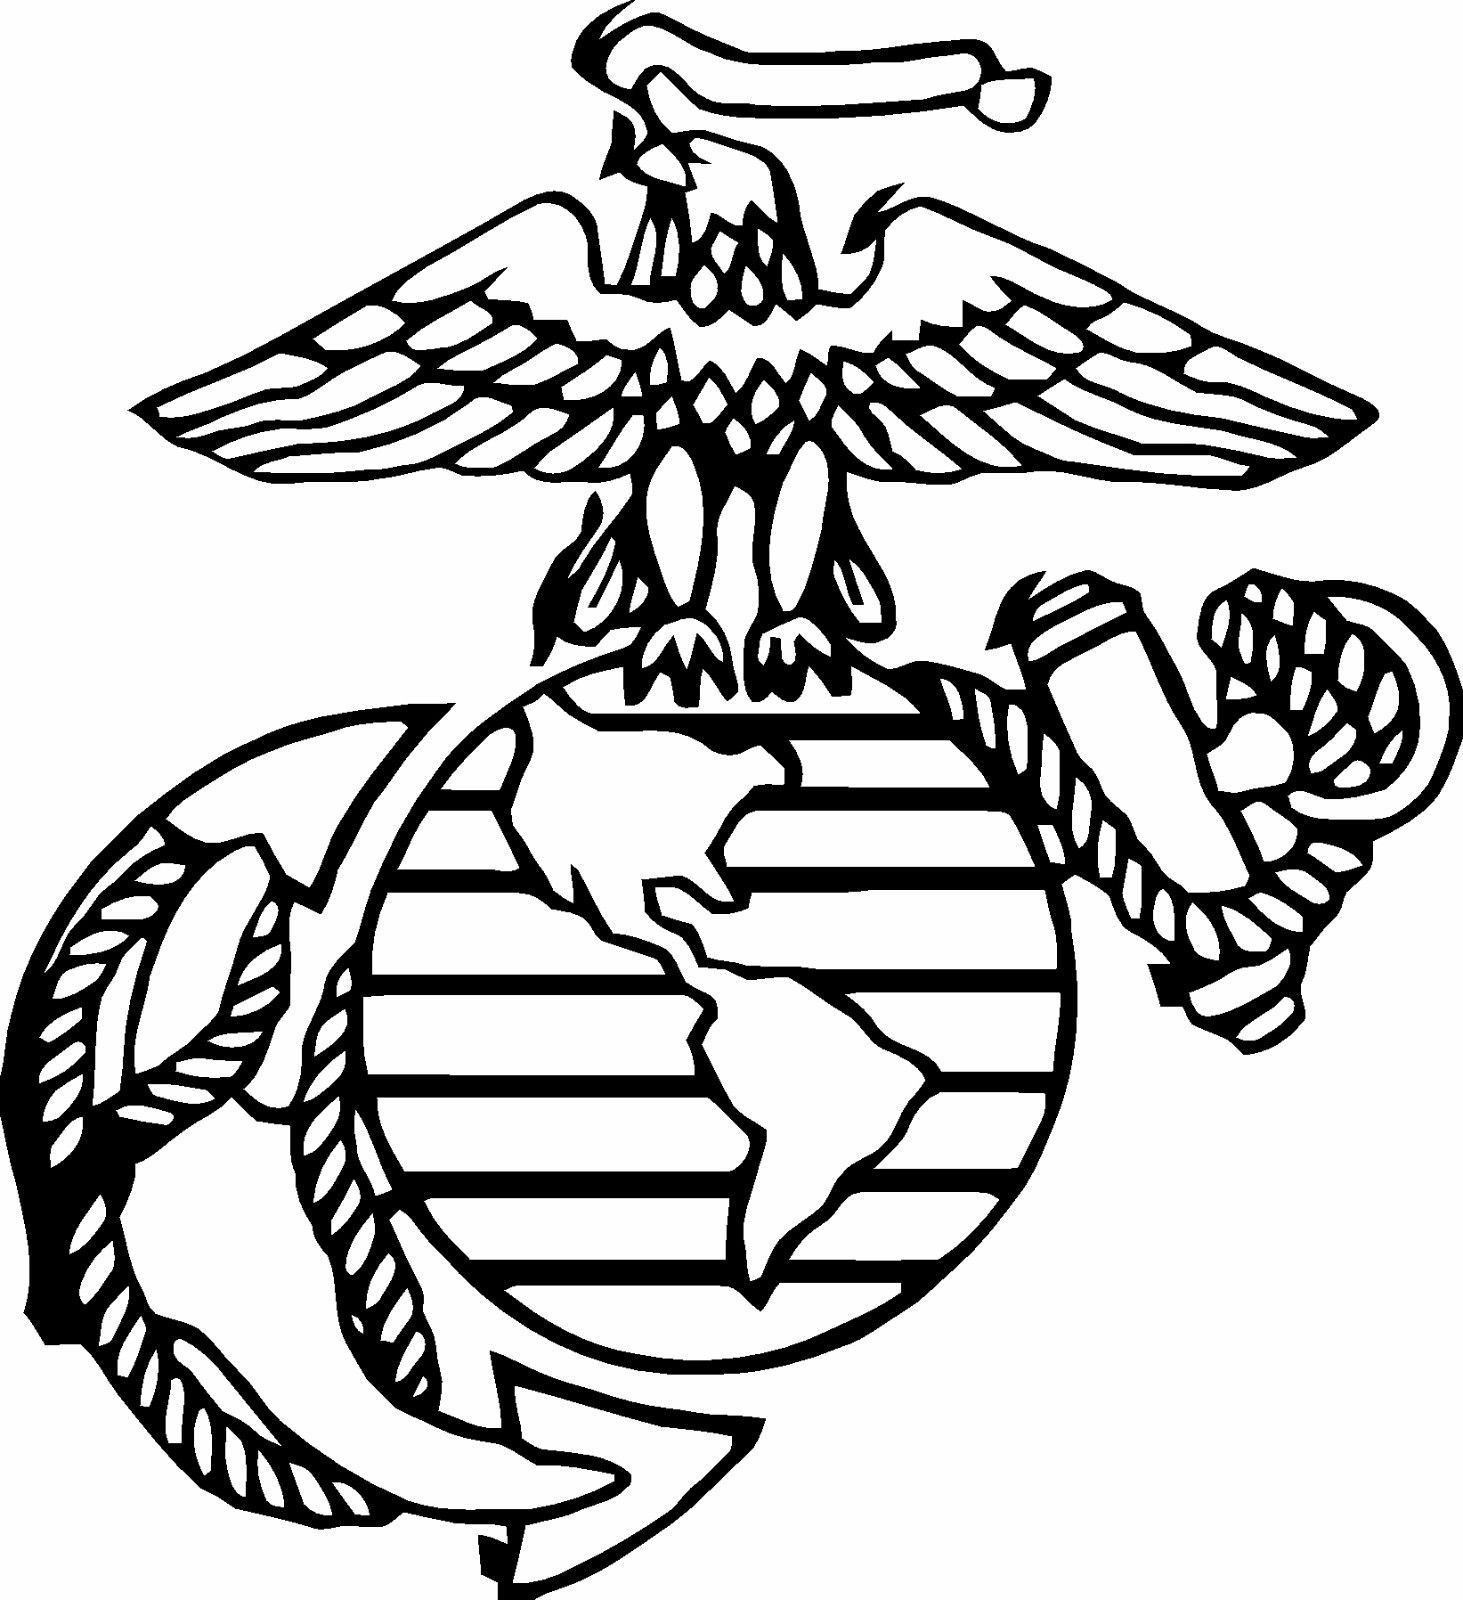 Details About Usmc United States Marine Corps Vinyl Decal